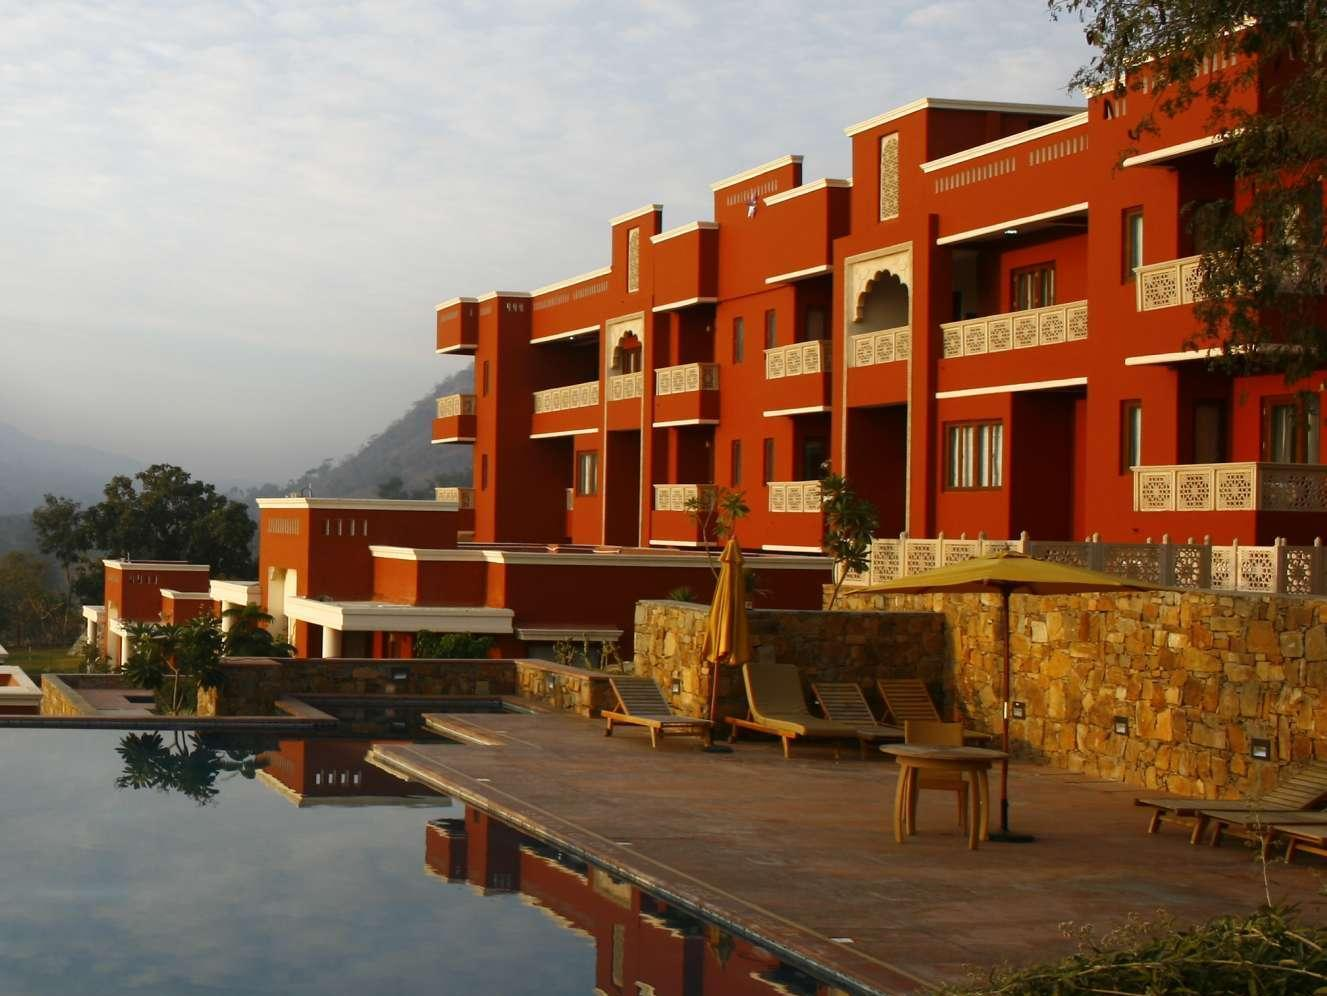 Club Mahindra Fort Kumbalgarh - Hotel and accommodation in India in Kumbalgarh